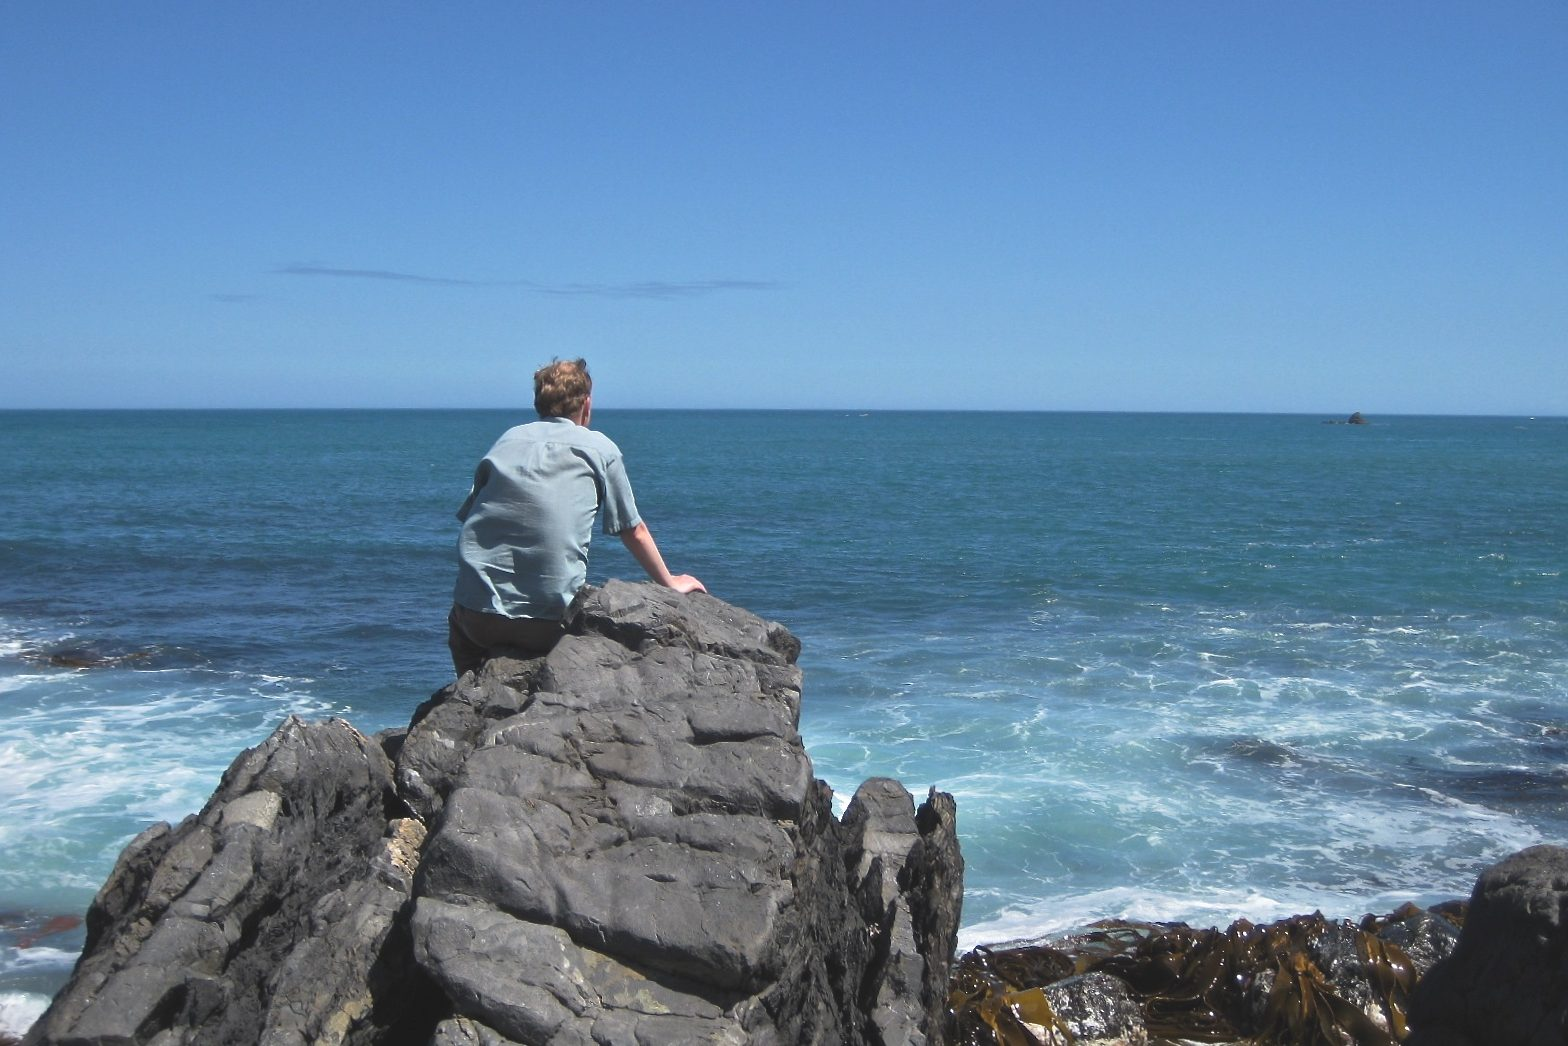 Man Sitting on Rock Looking at Ocean